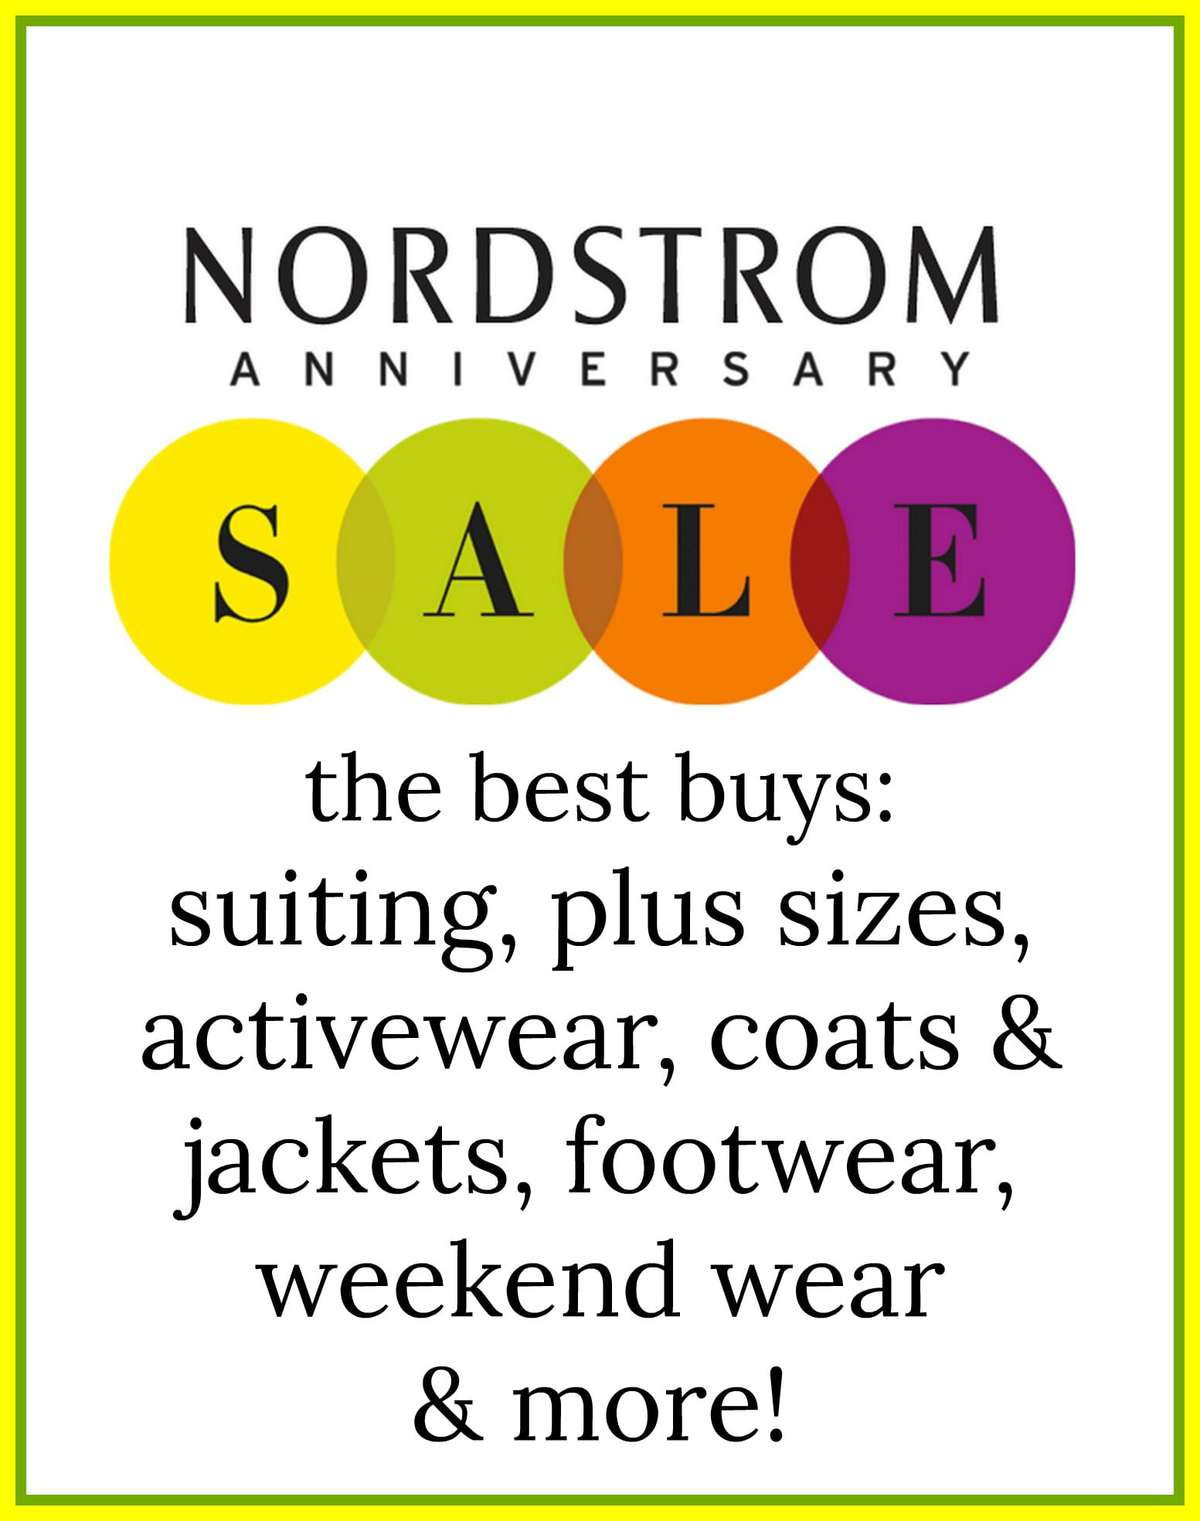 nordstrom anniversary sale shopping guide